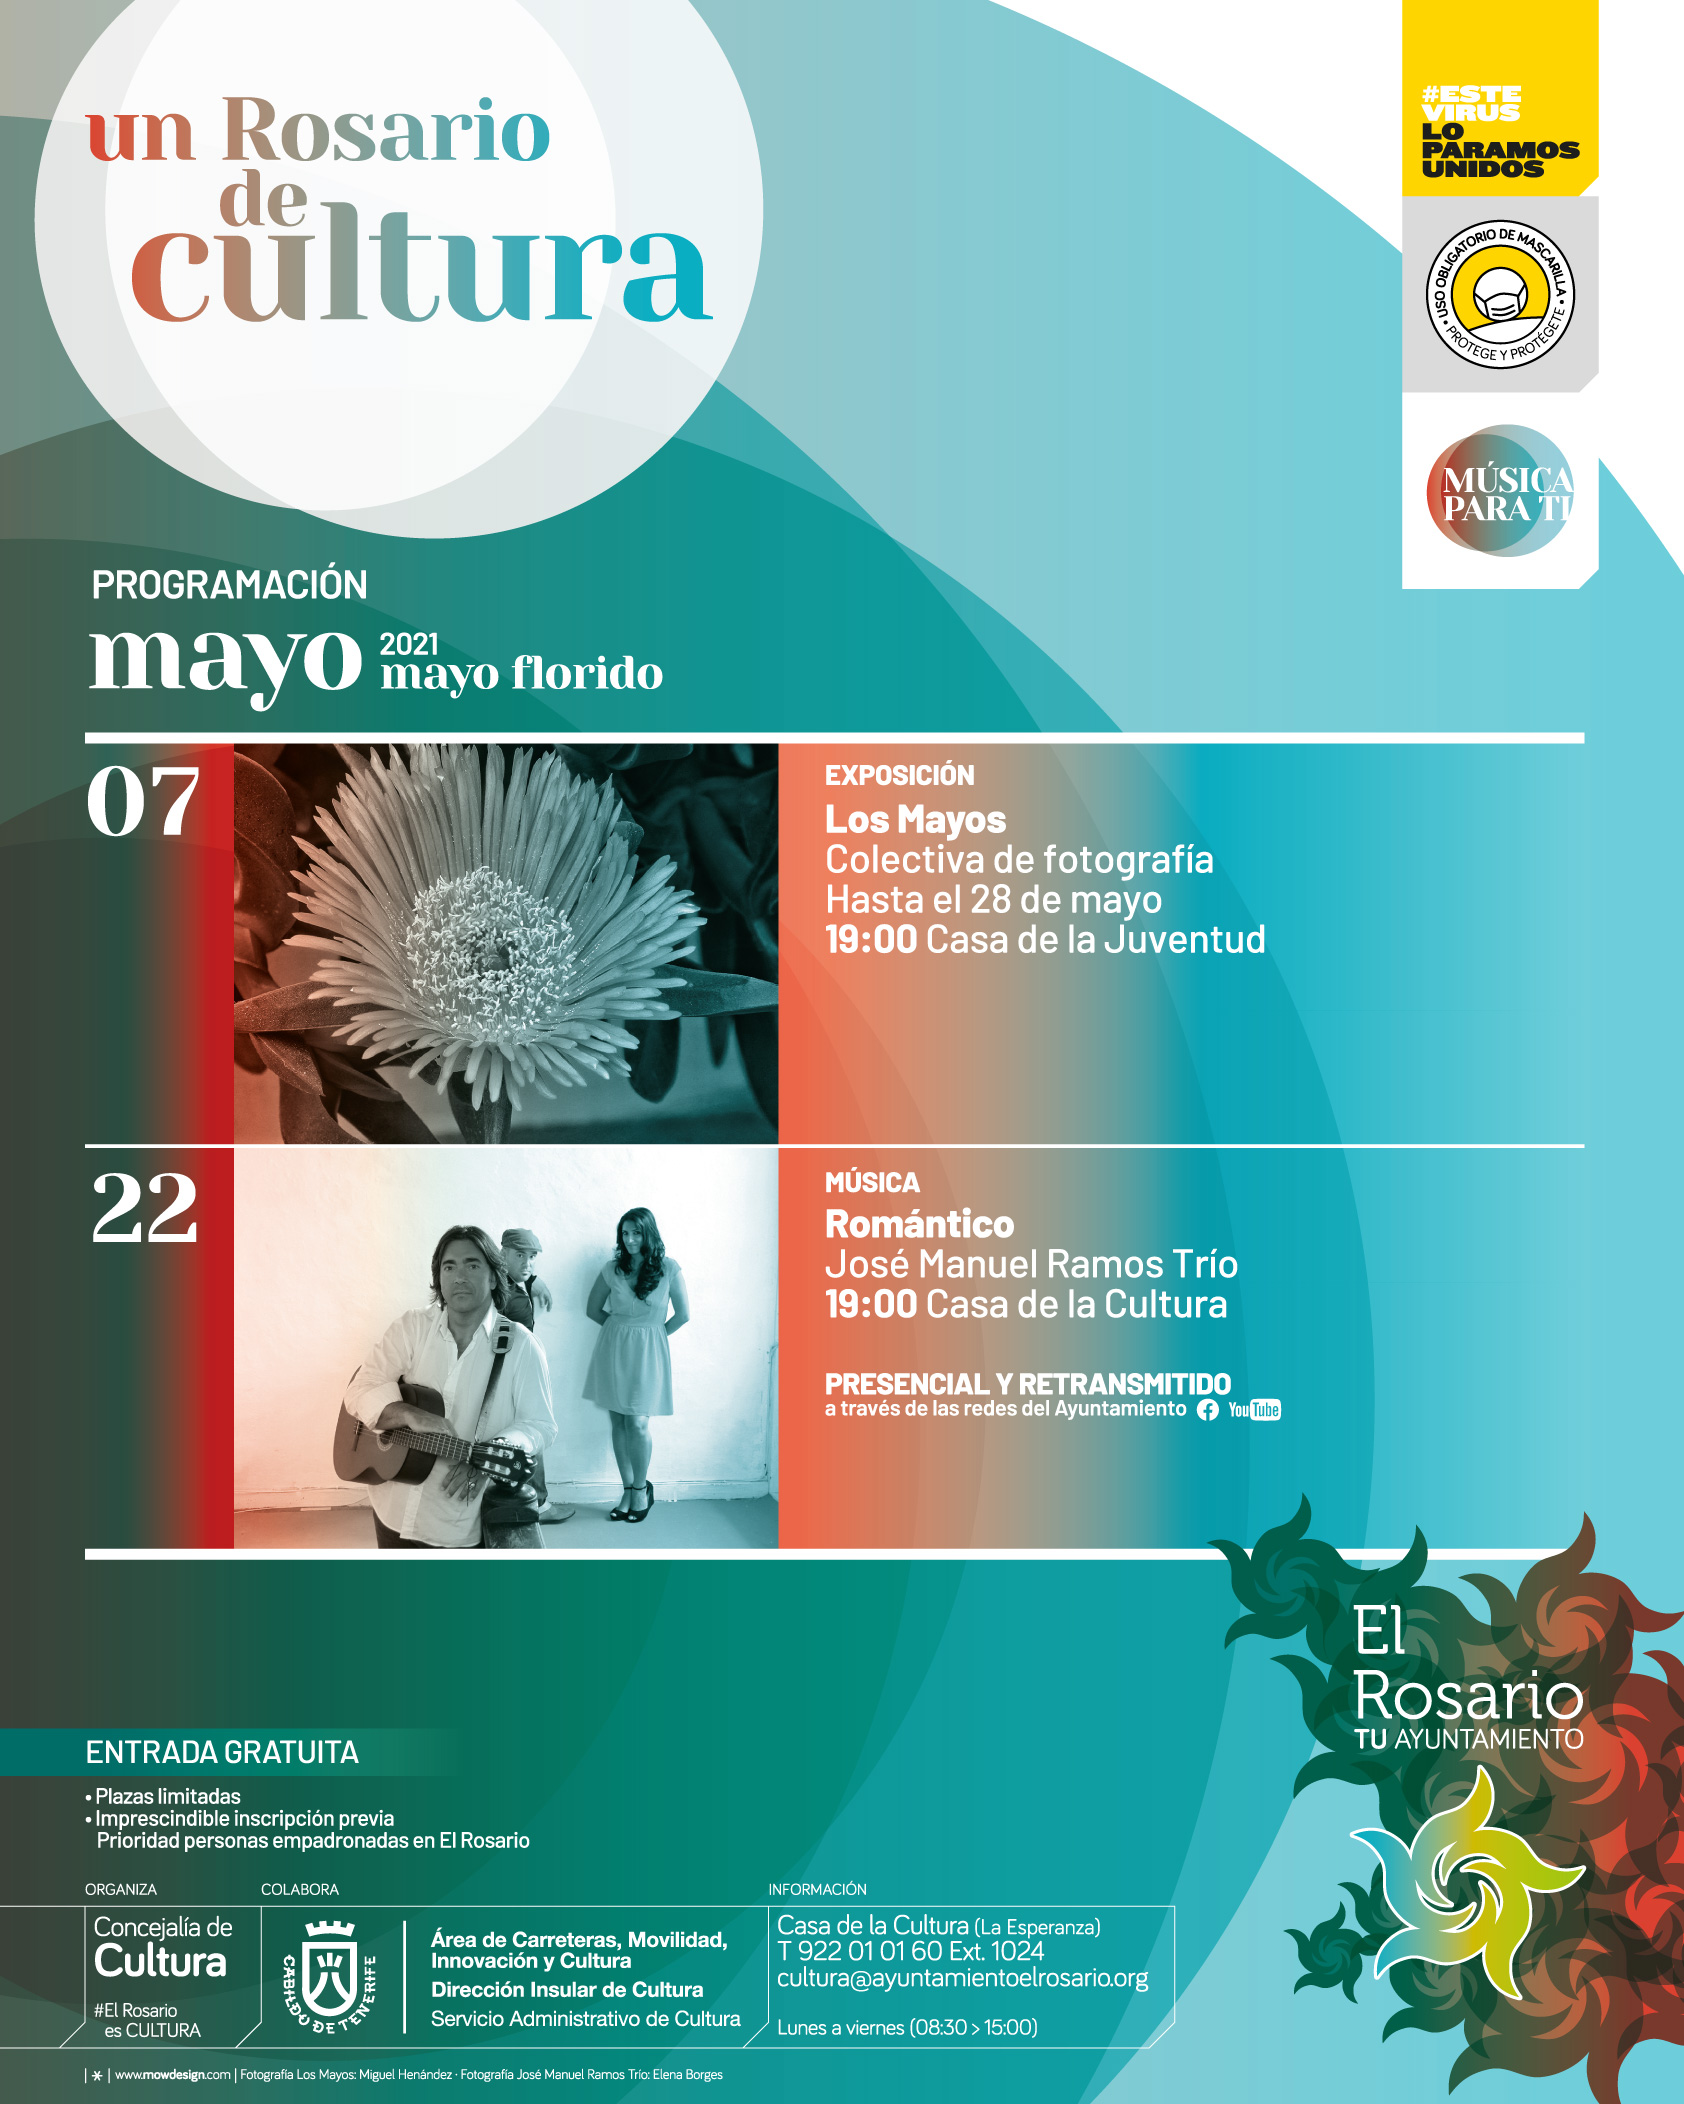 MUSICA_PARA_TI_2021-05_MAYO-20210415-CARTEL_A3-20210512-02af-redes